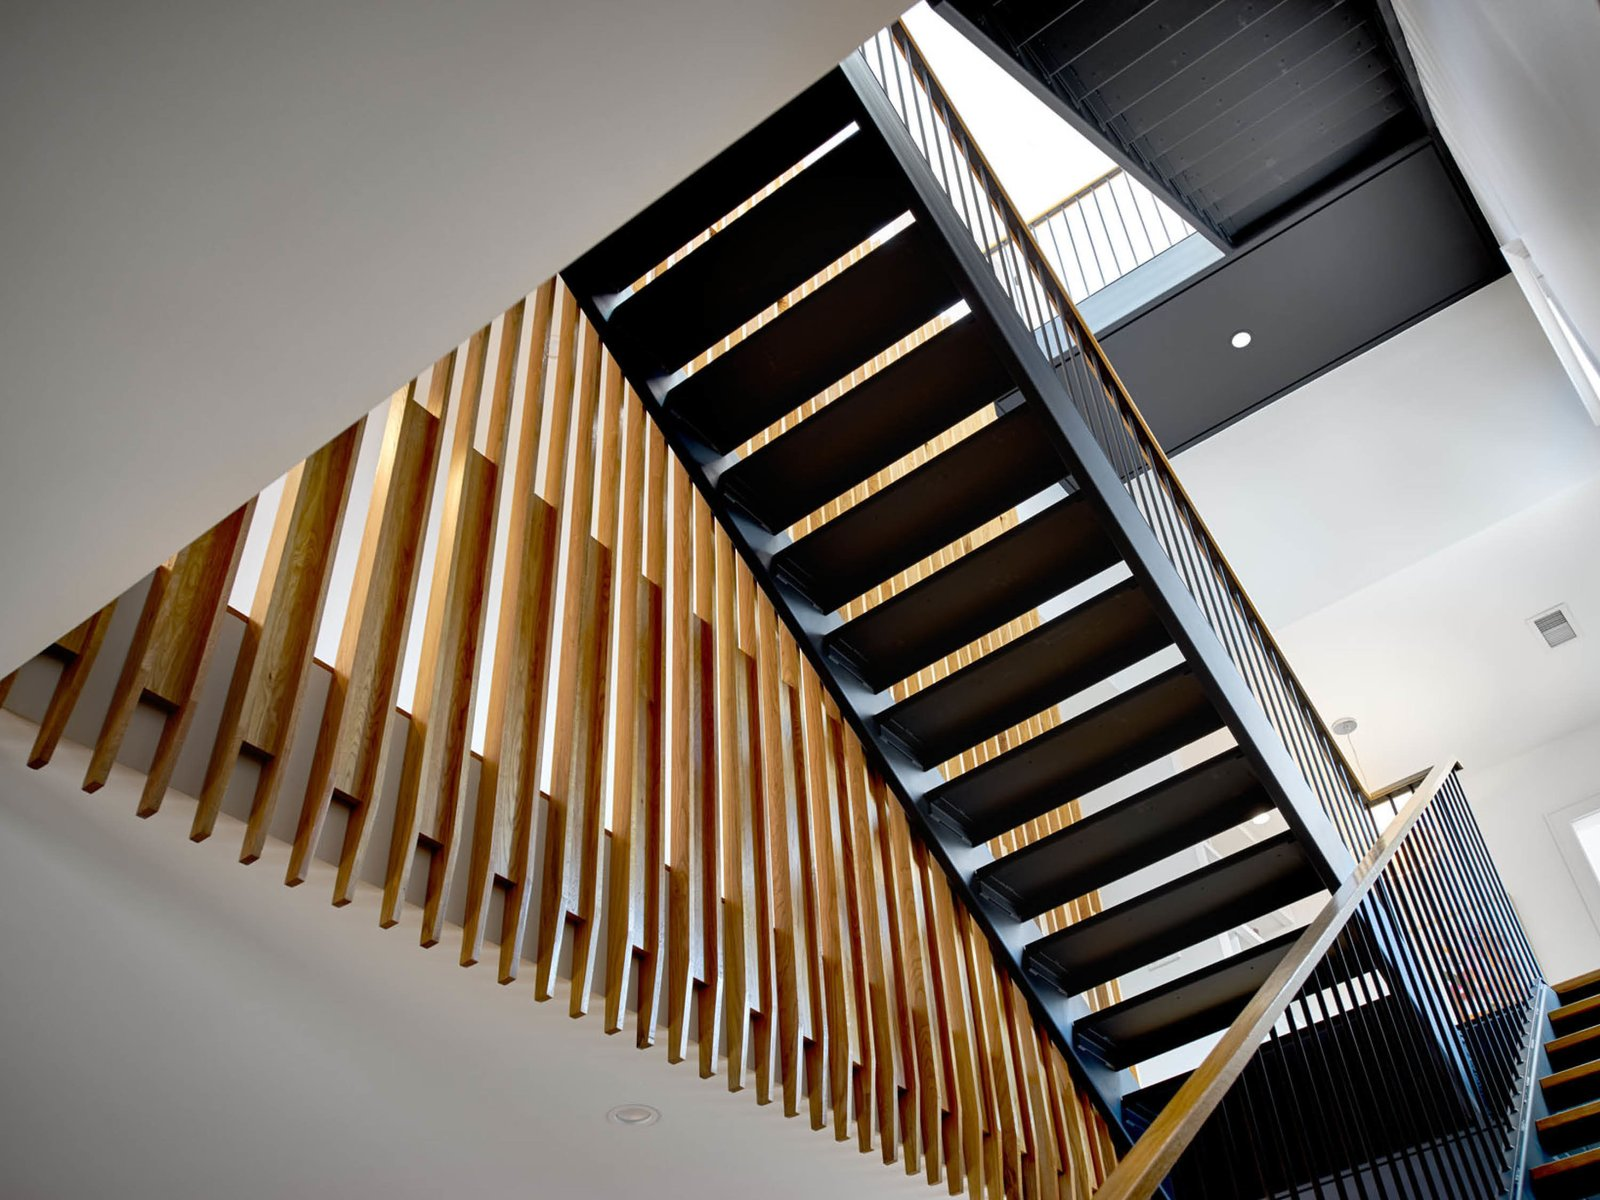 Staircase, Metal Tread, Wood Tread, Metal Railing, and Wood Railing Stair screen  The Historic Ely Building